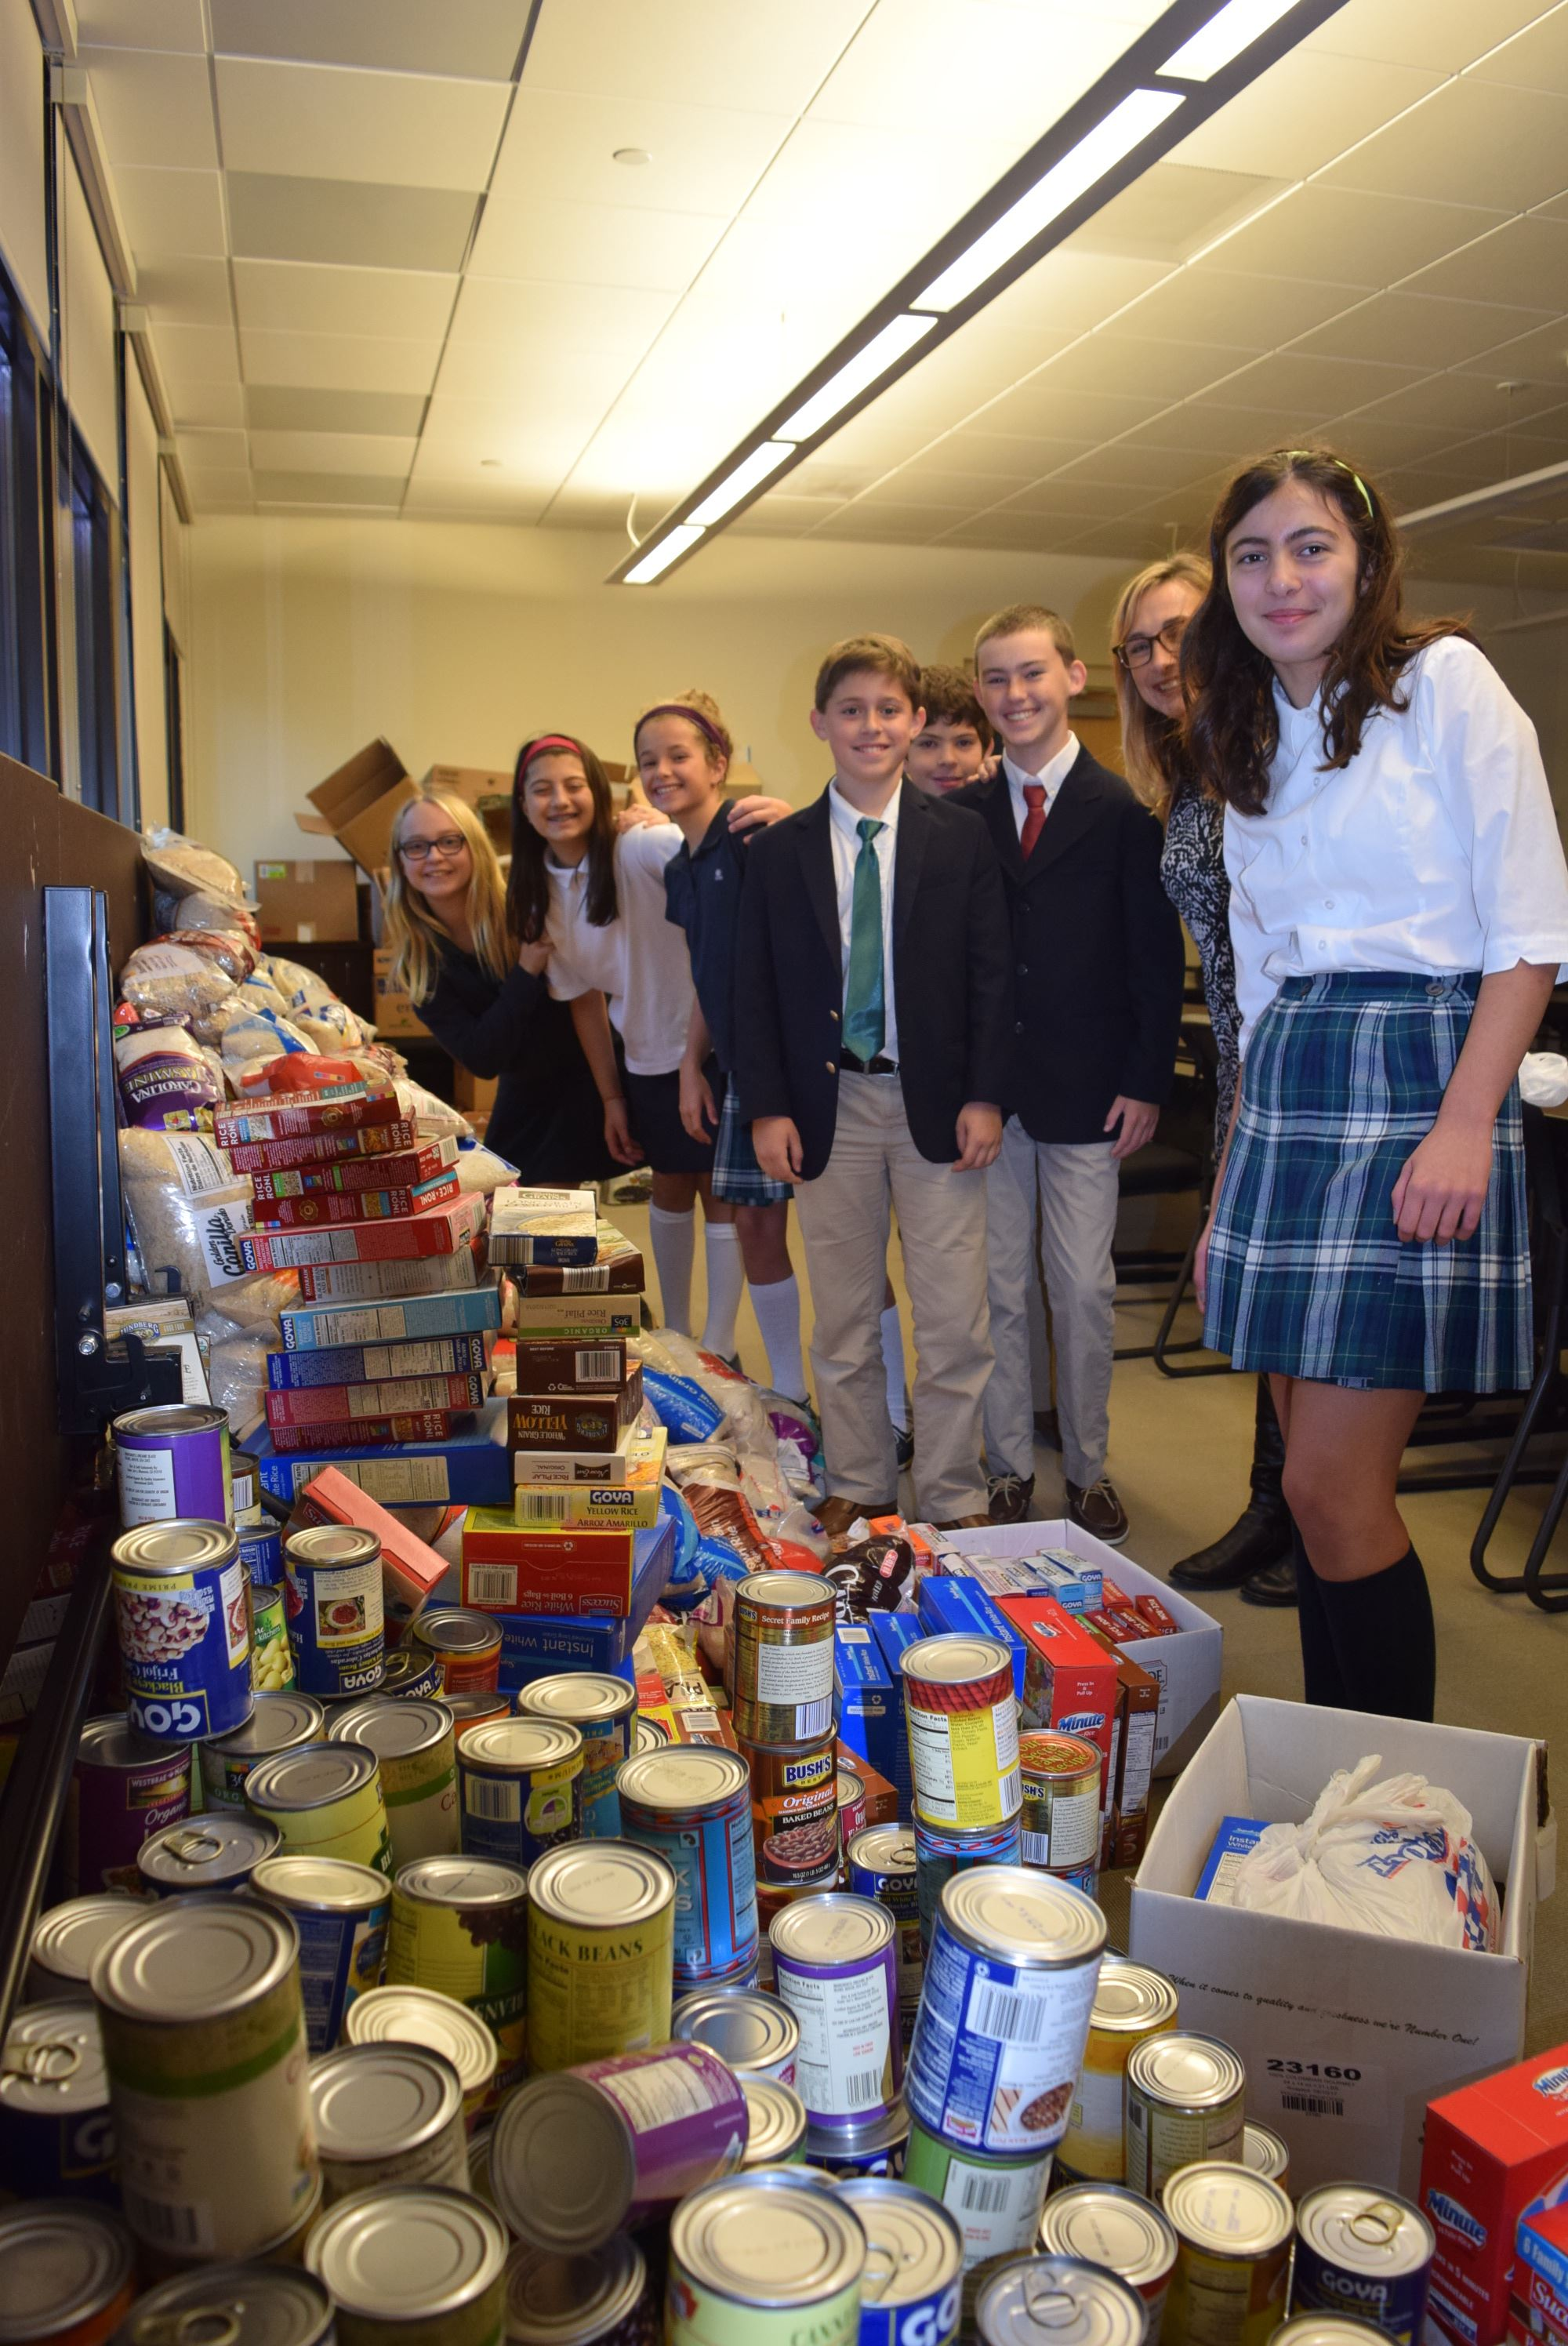 Sixth graders pose with canned goods for a food drive